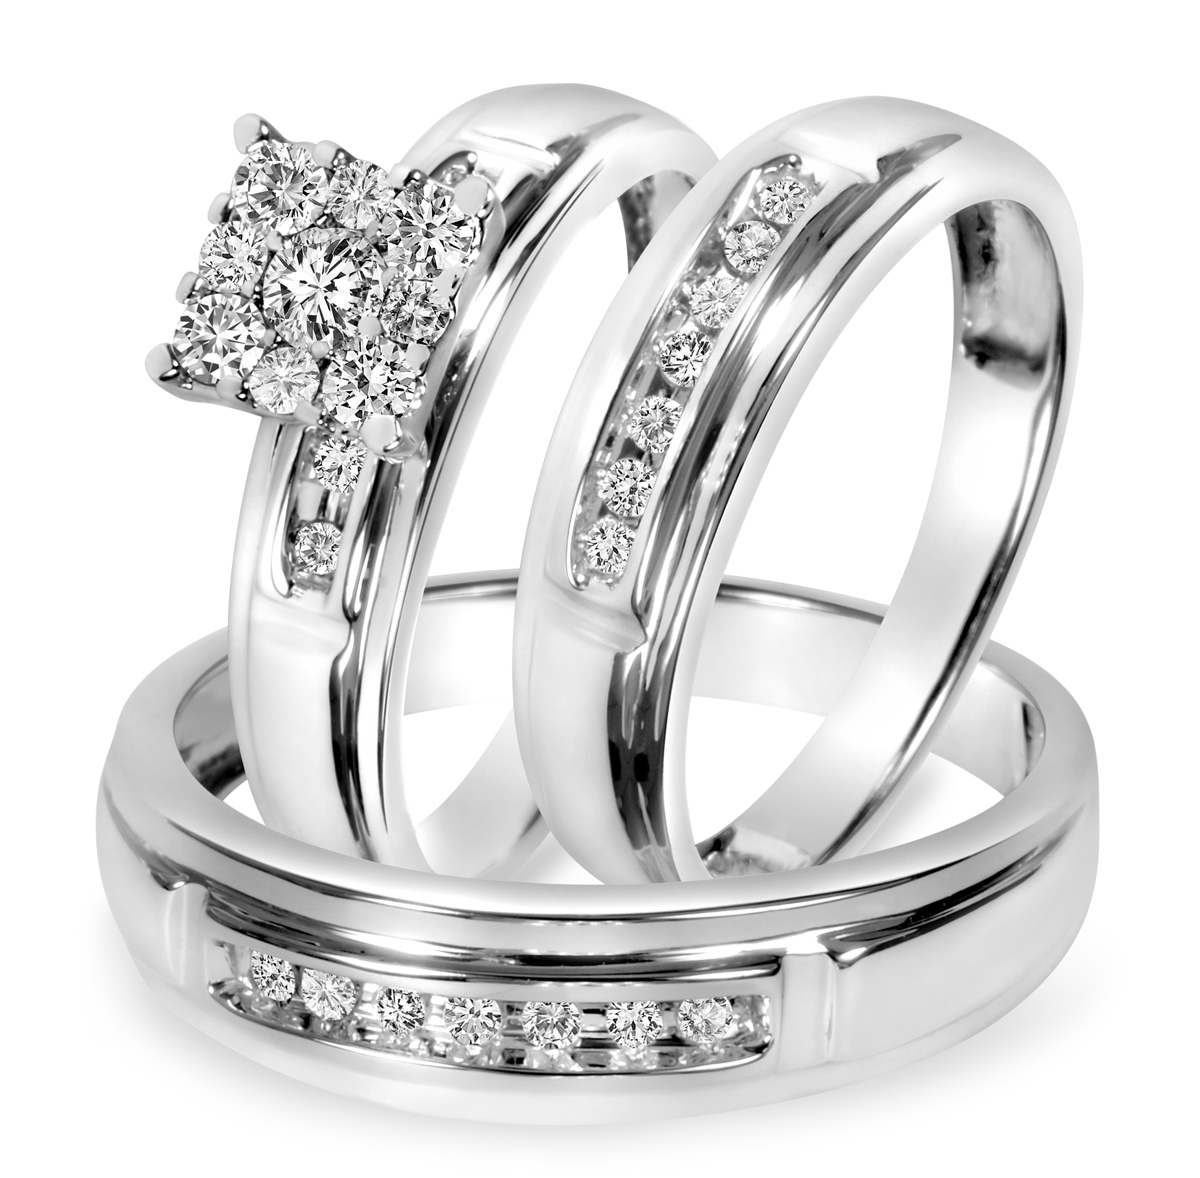 1 2 ct t w diamond trio matching wedding ring set 10k